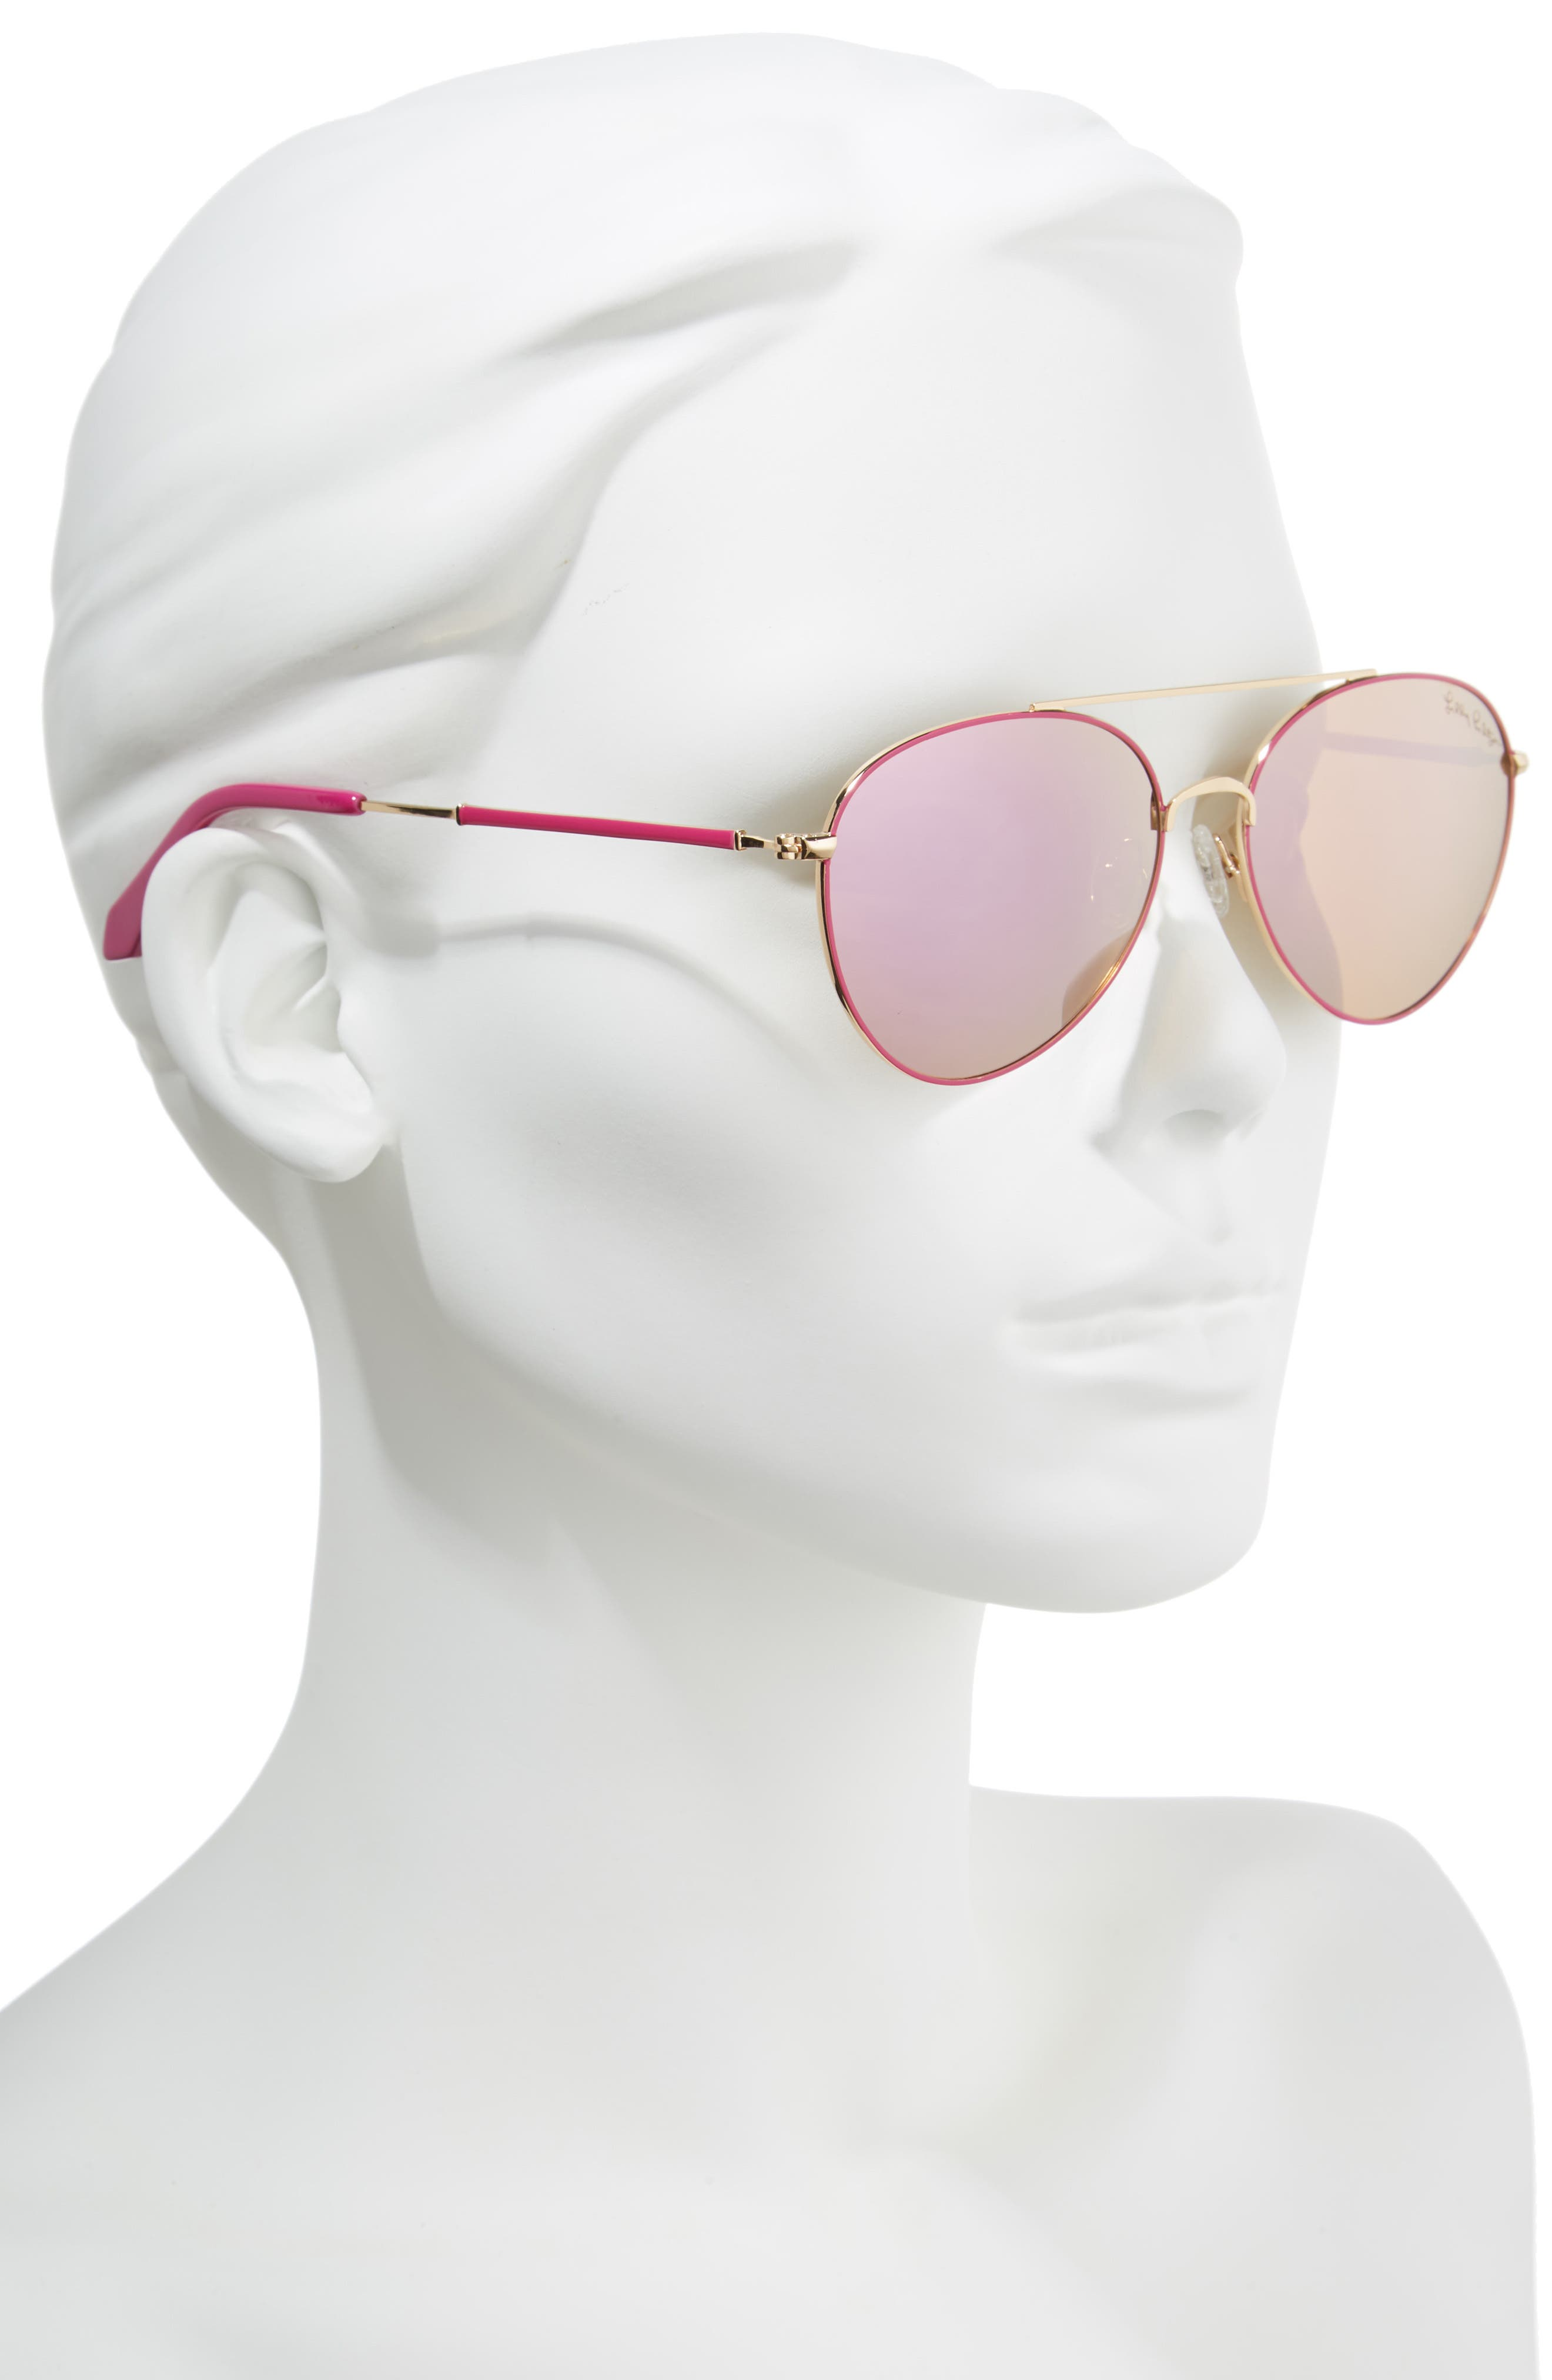 Isabelle 56mm Polarized Metal Aviator Sunglasses,                             Alternate thumbnail 2, color,                             PINK/ PINK